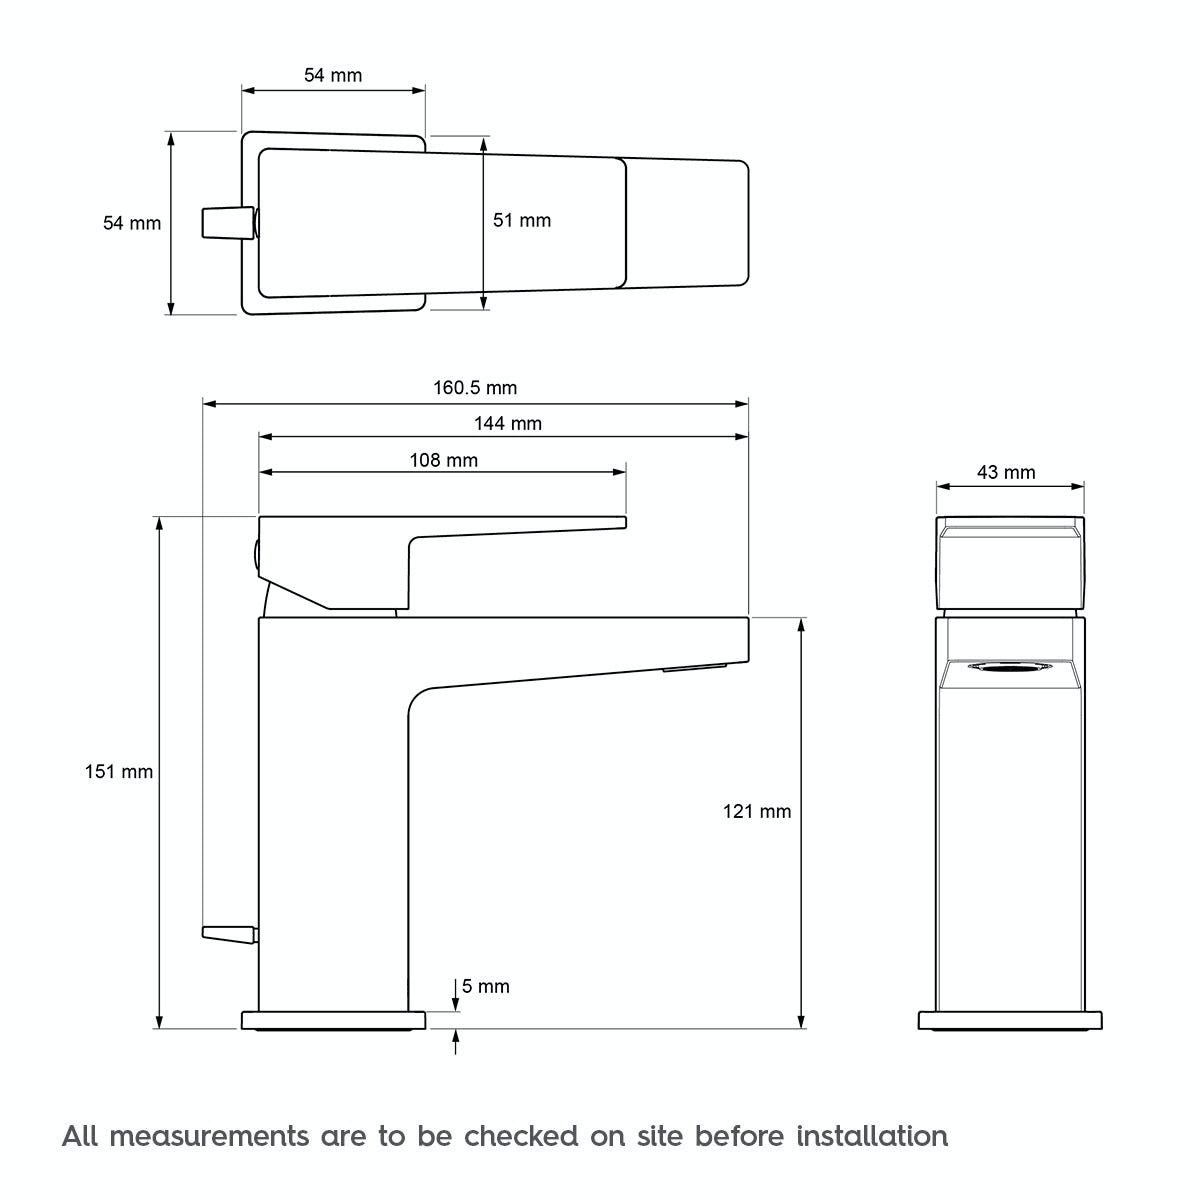 Technical drawing for Mira Honesty basin mixer tap